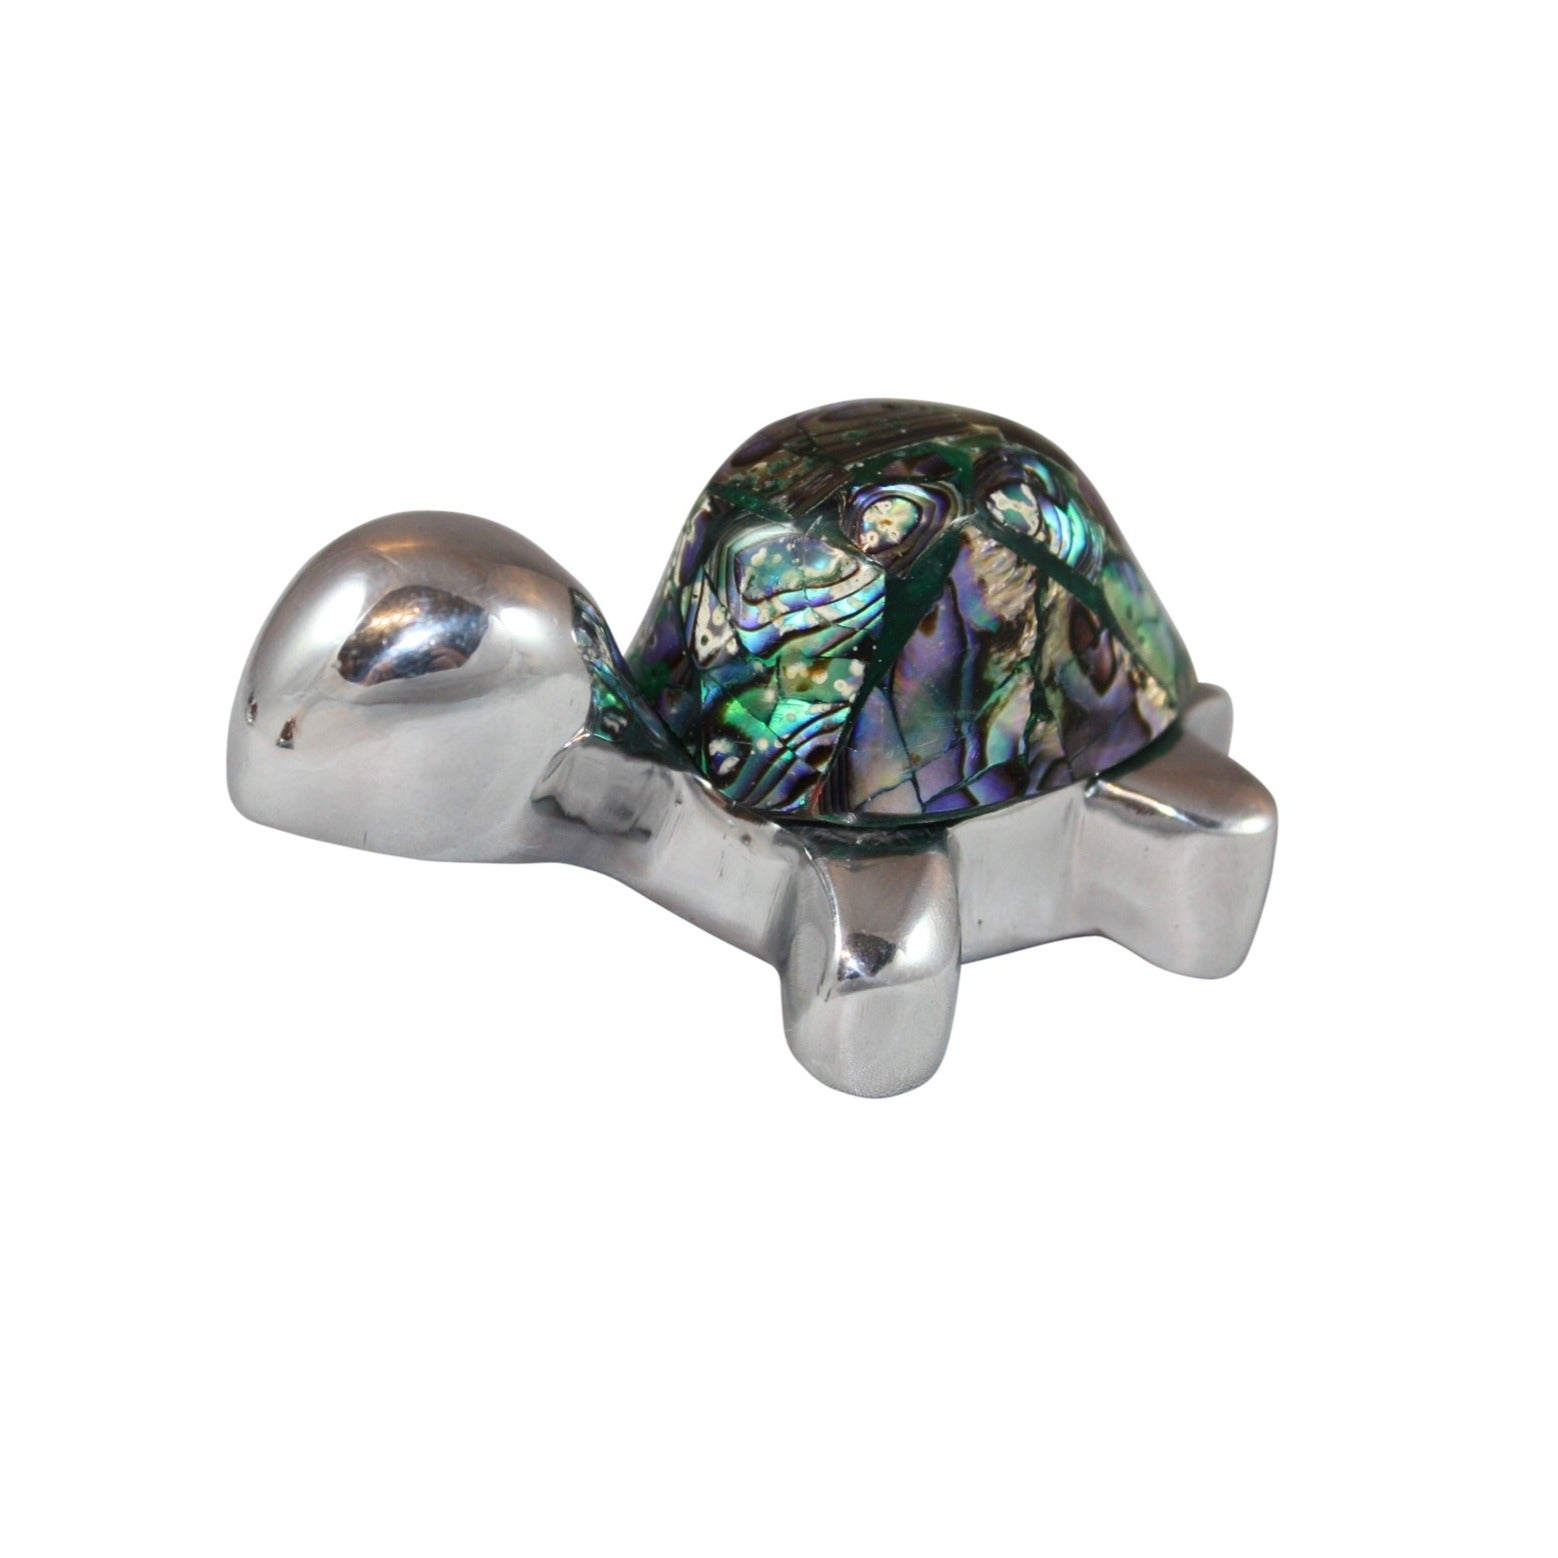 Land Turtle Mini Figurine Paua Shell